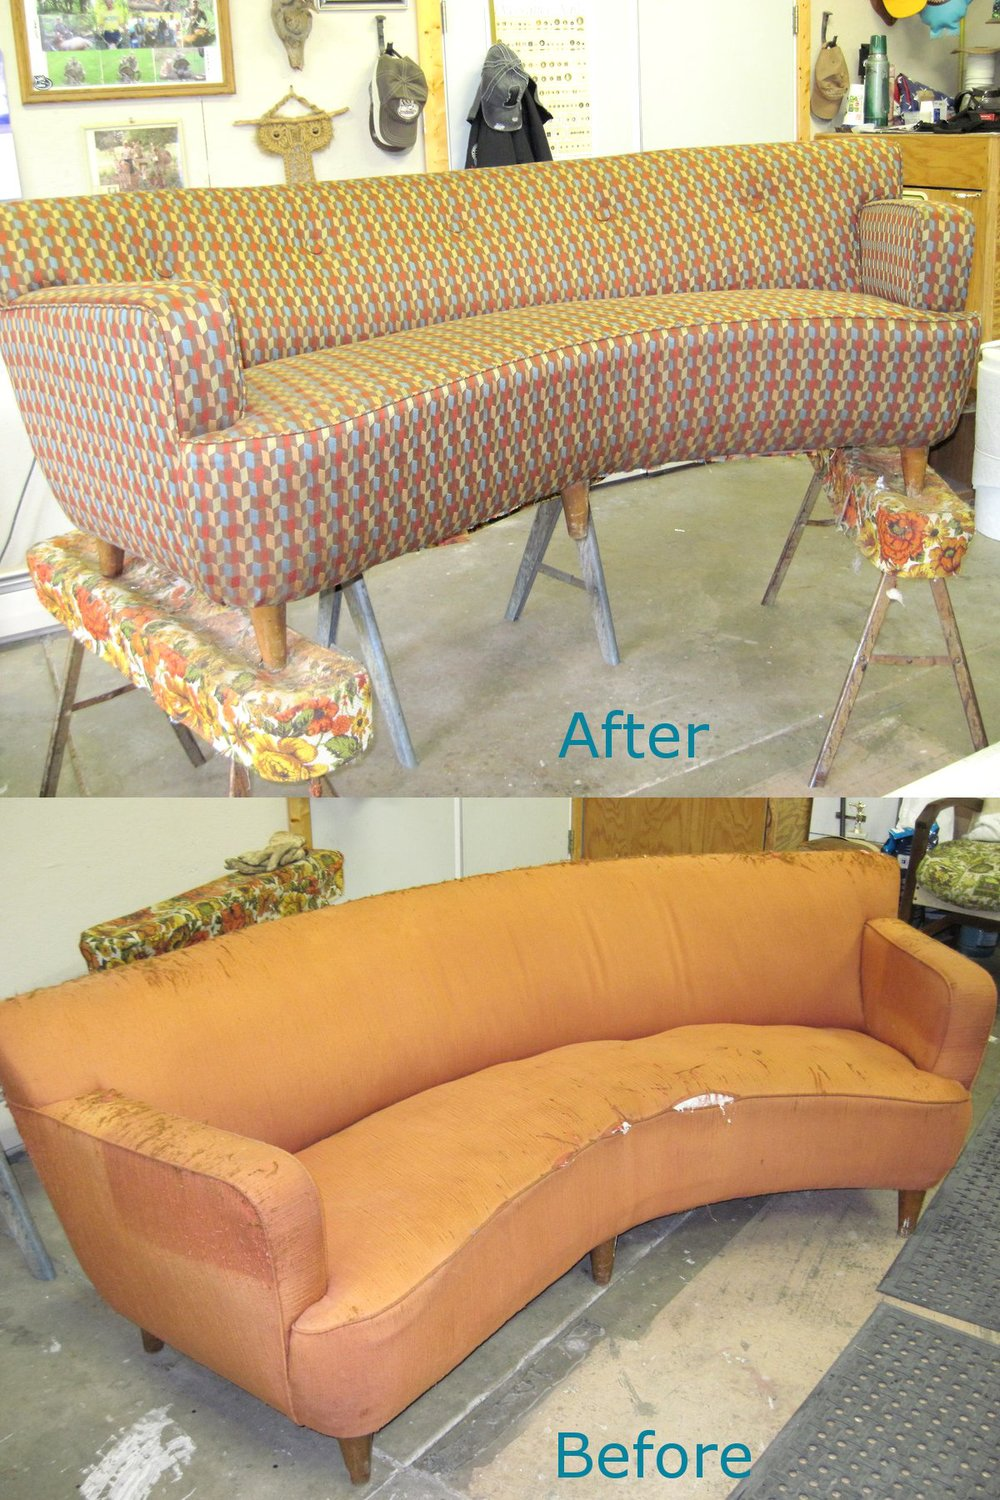 curvecouchbeforeafter.jpg